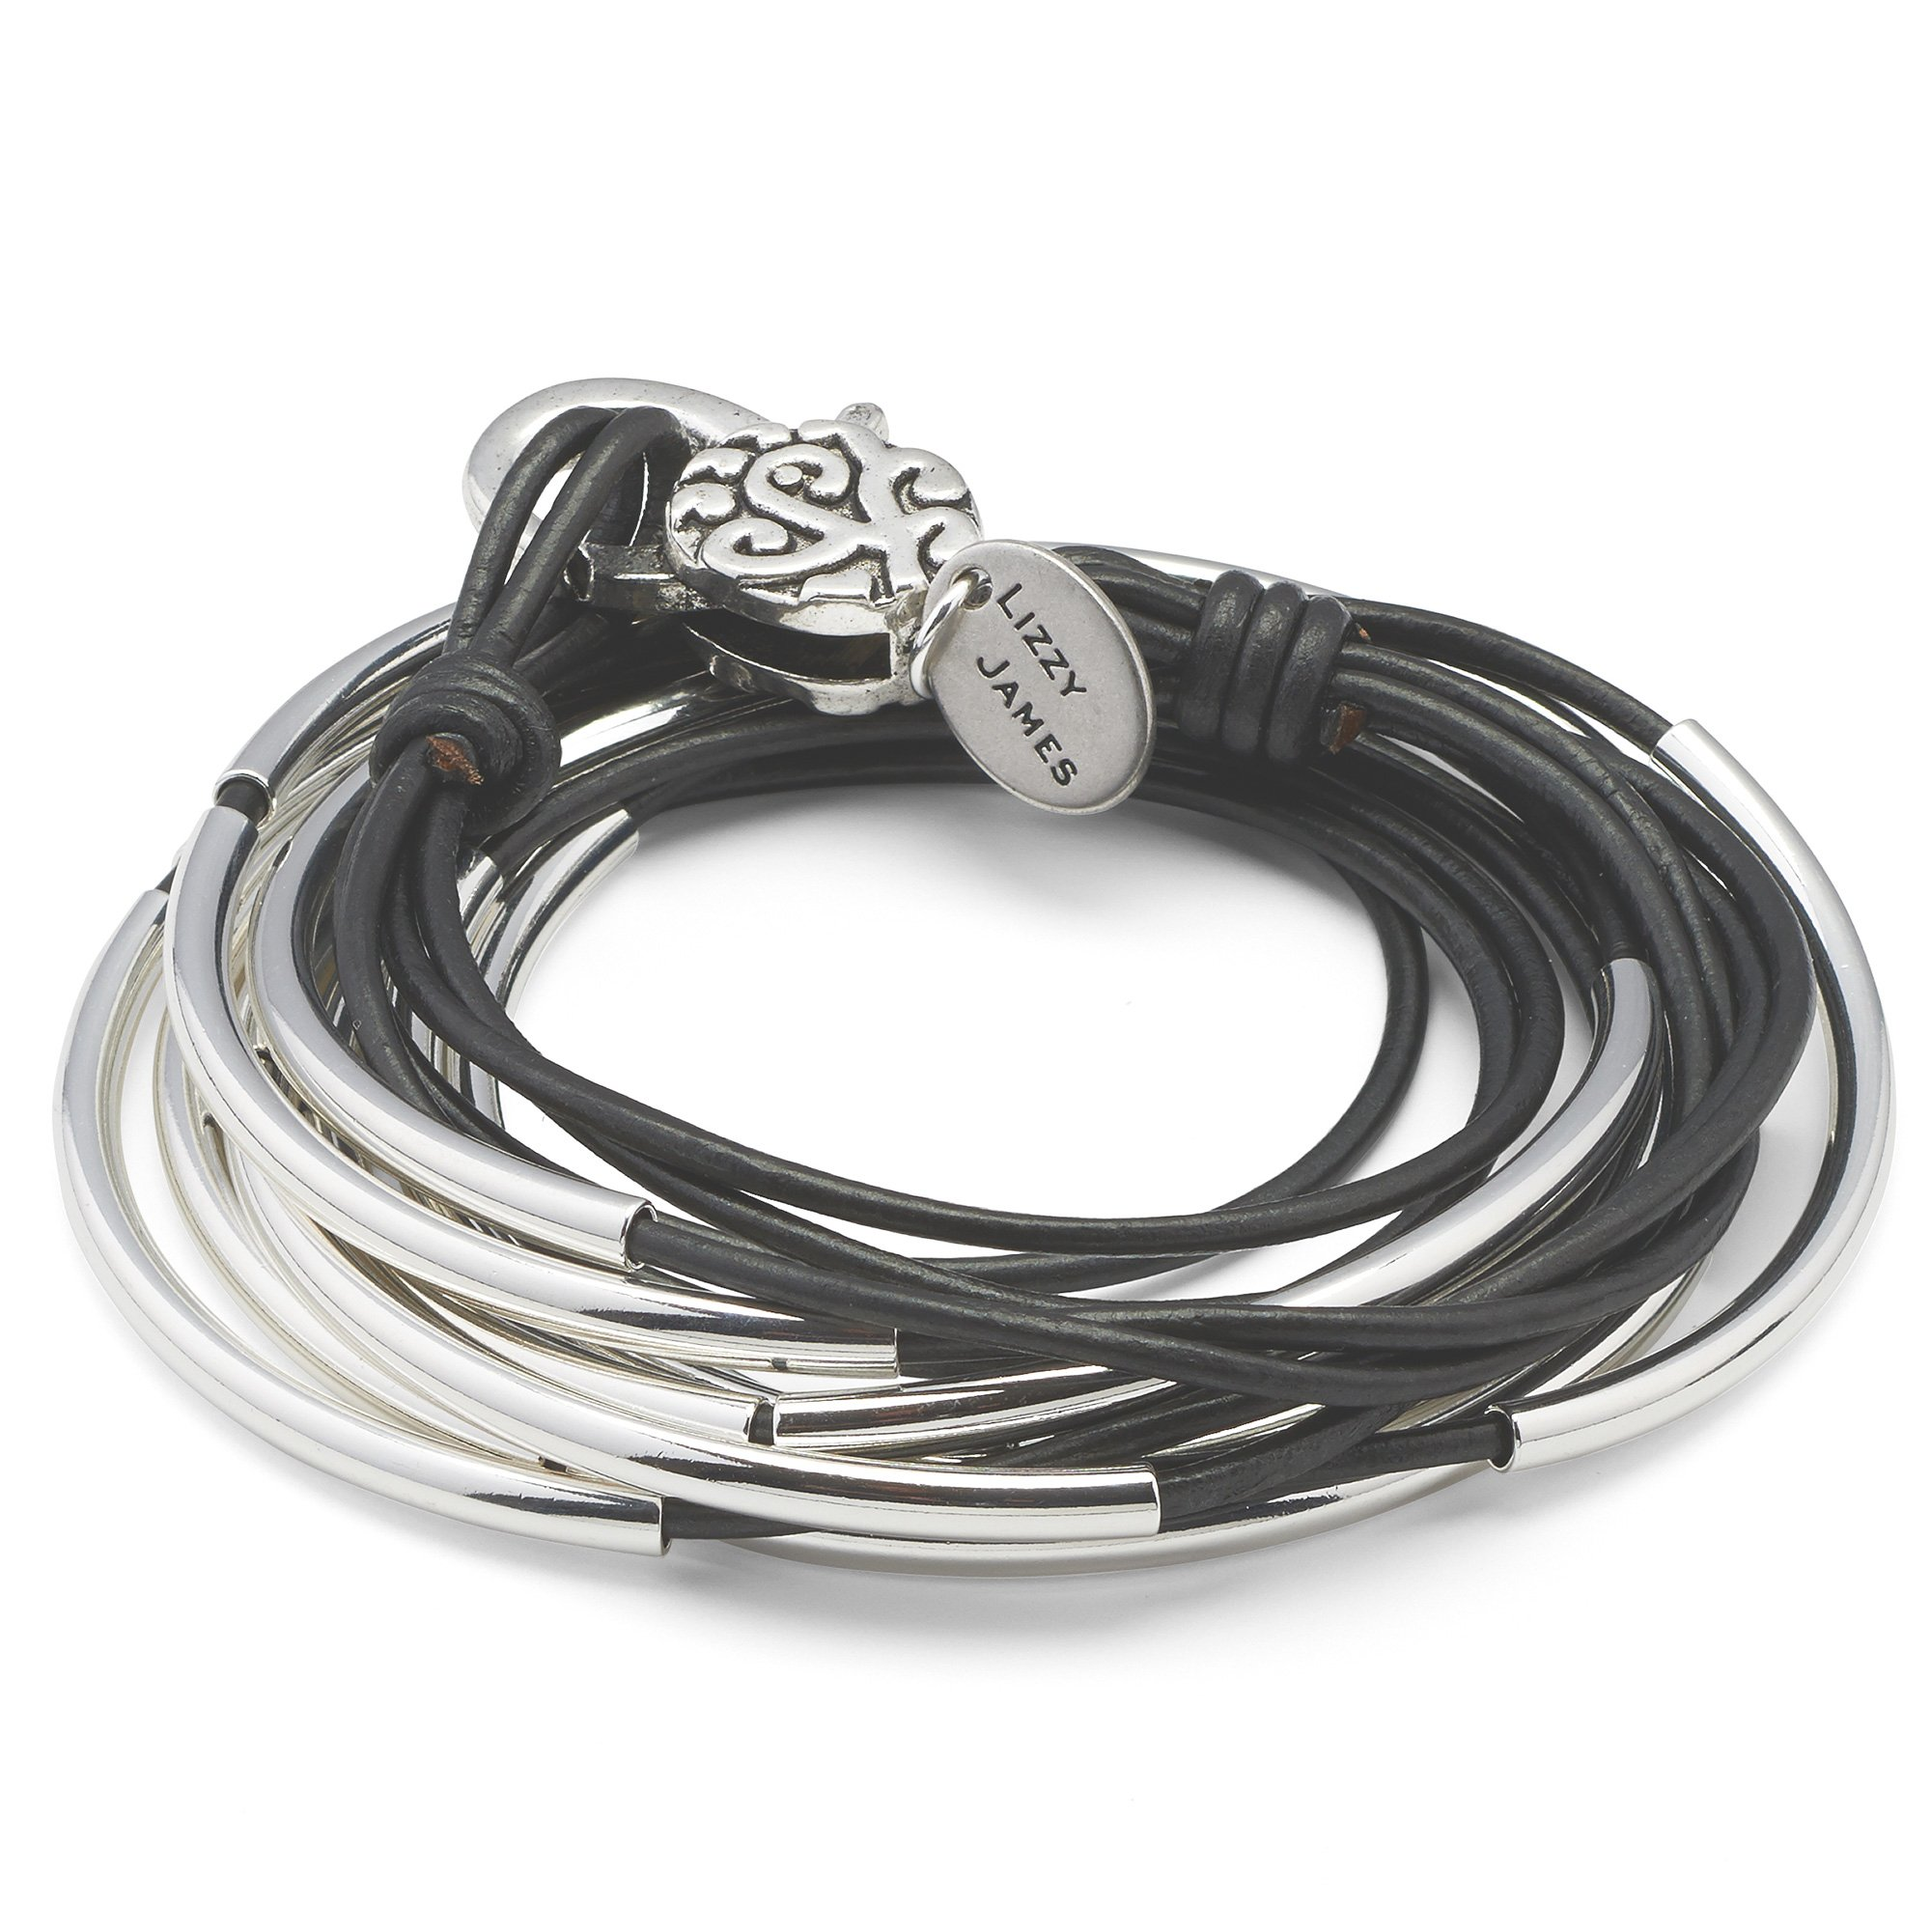 Lizzy Classic Silverplate 4 Strand Wrap Bracelet Necklace in Metallic Gunmetal Leather Size Small